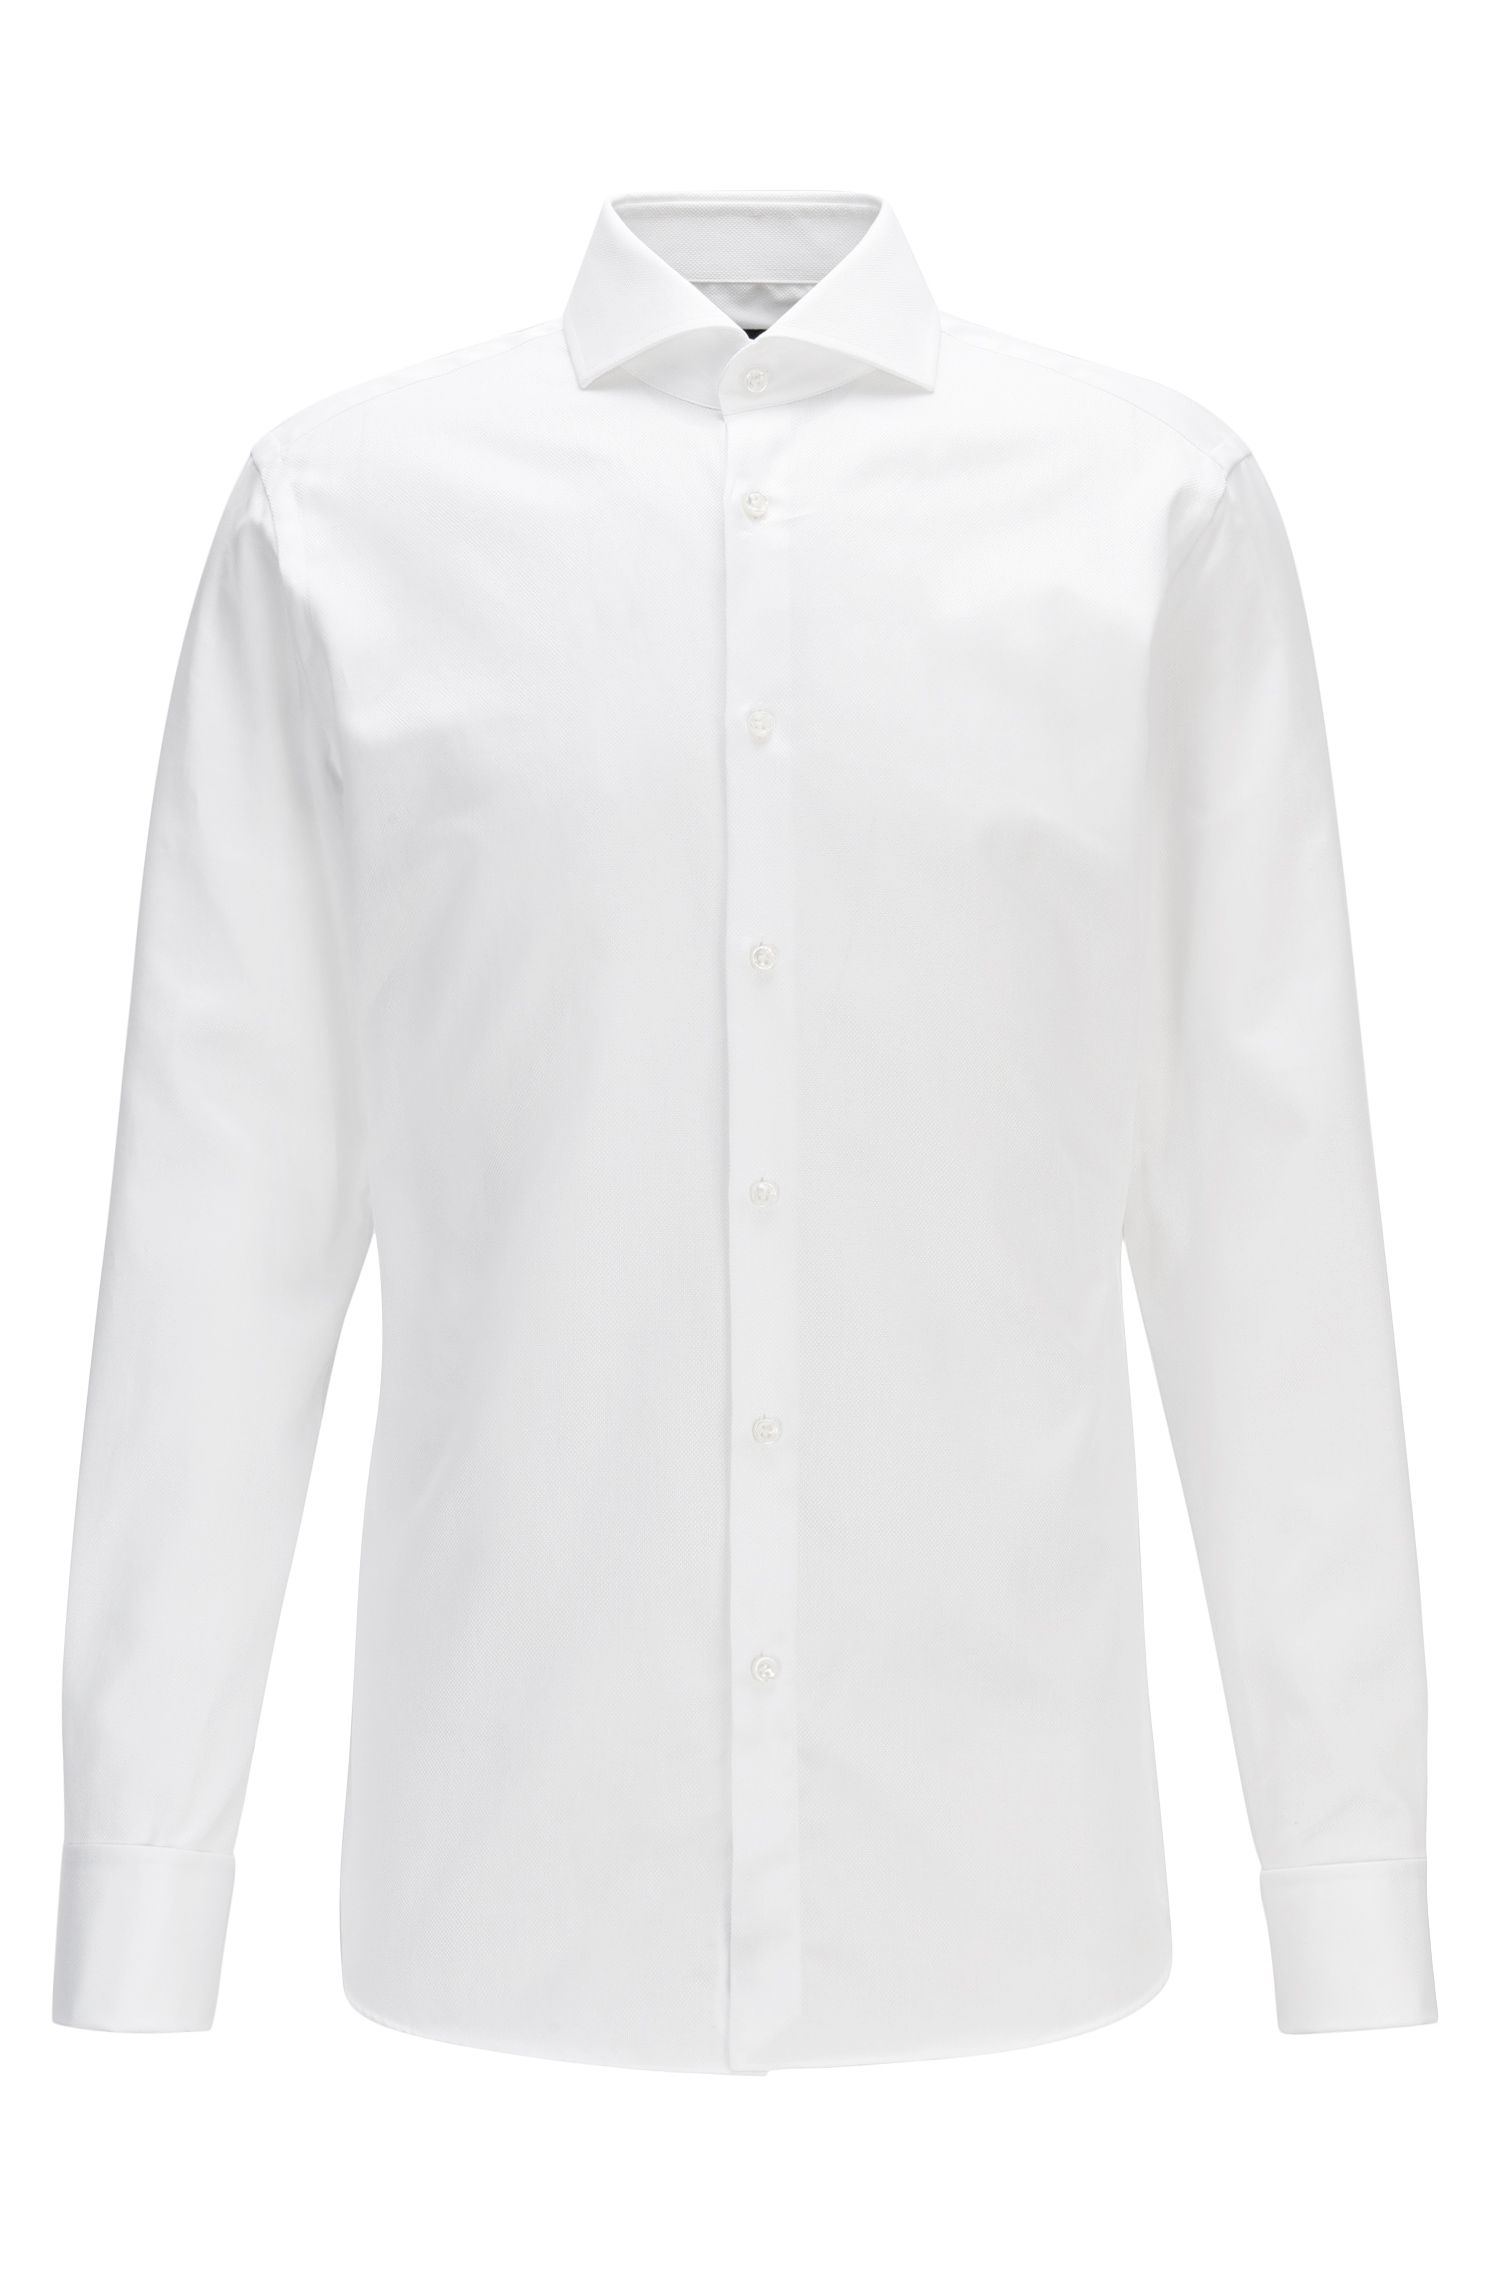 Structured-cotton shirt in a slim fit with double cuffs